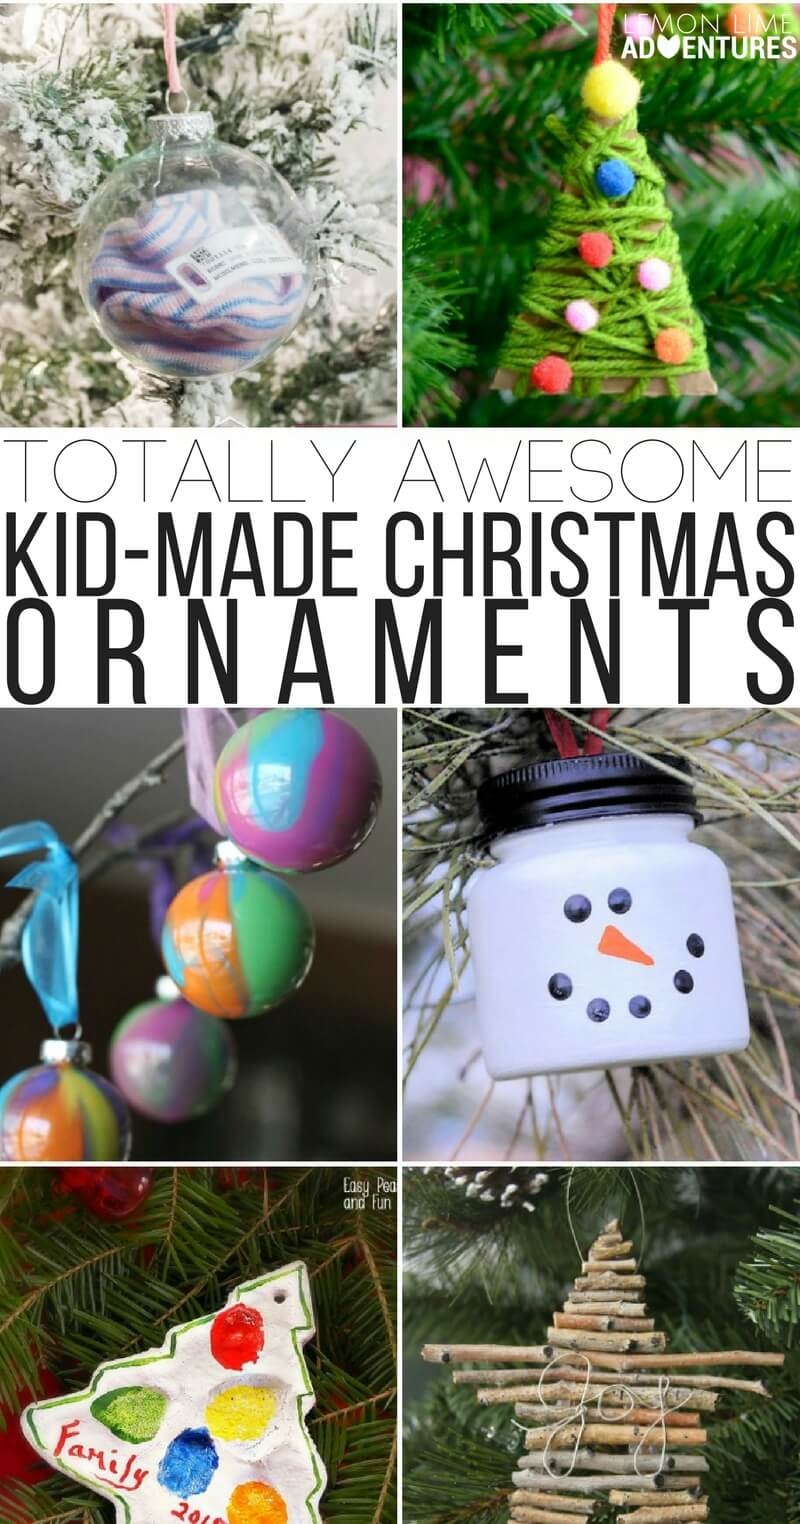 Totally Awesome Kid-Made Christmas Ornaments